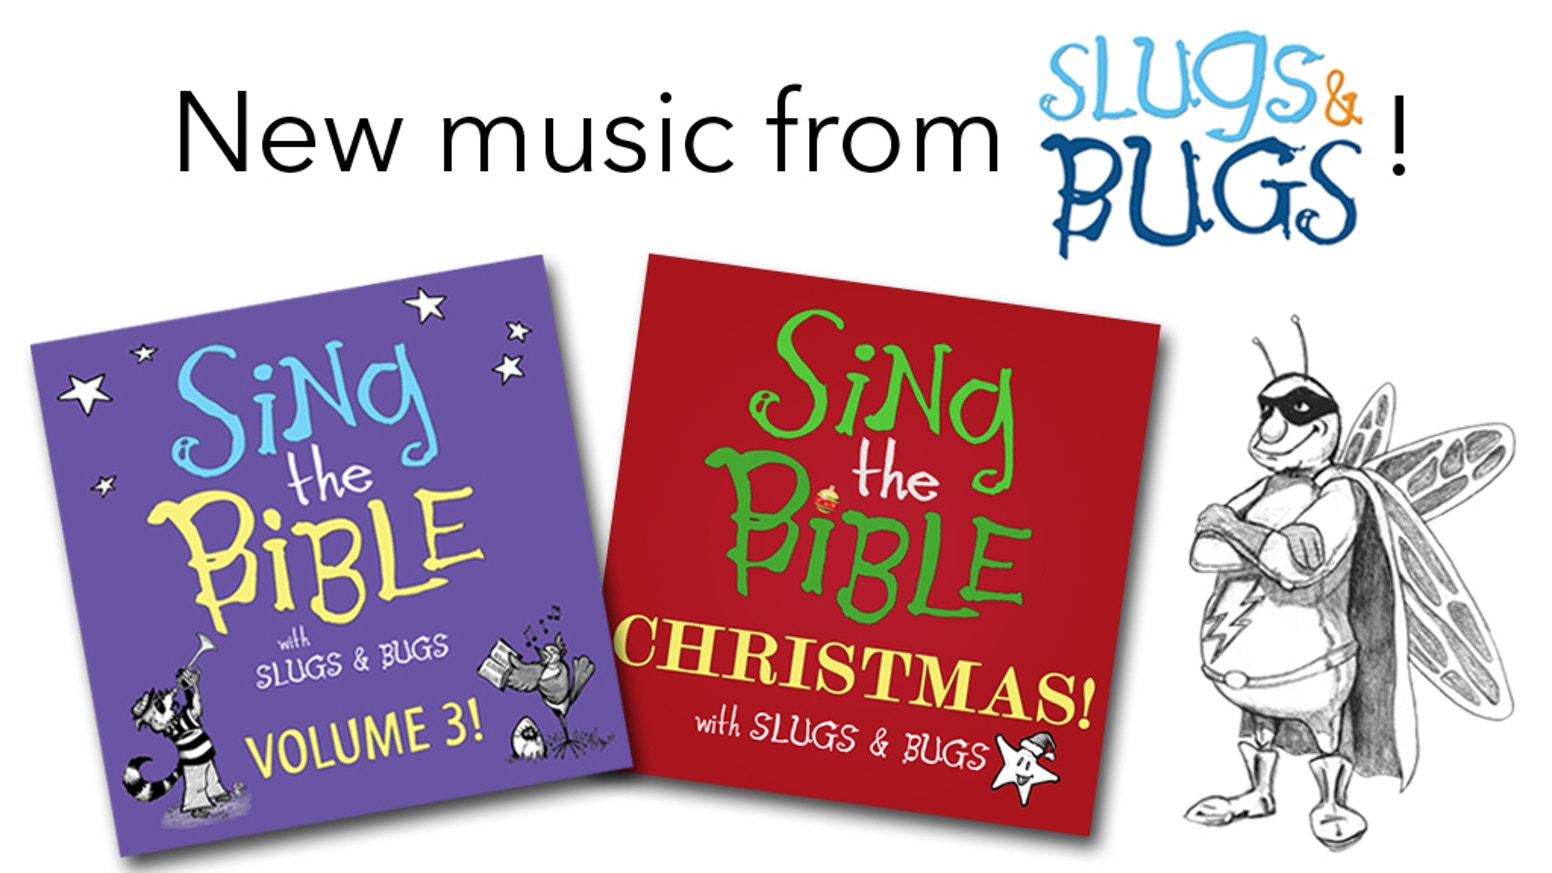 Slugs & Bugs is making TWO NEW Sing the Bible CDs in 2017, with Scripture songs all about Jesus - His words, His life, and His mission.